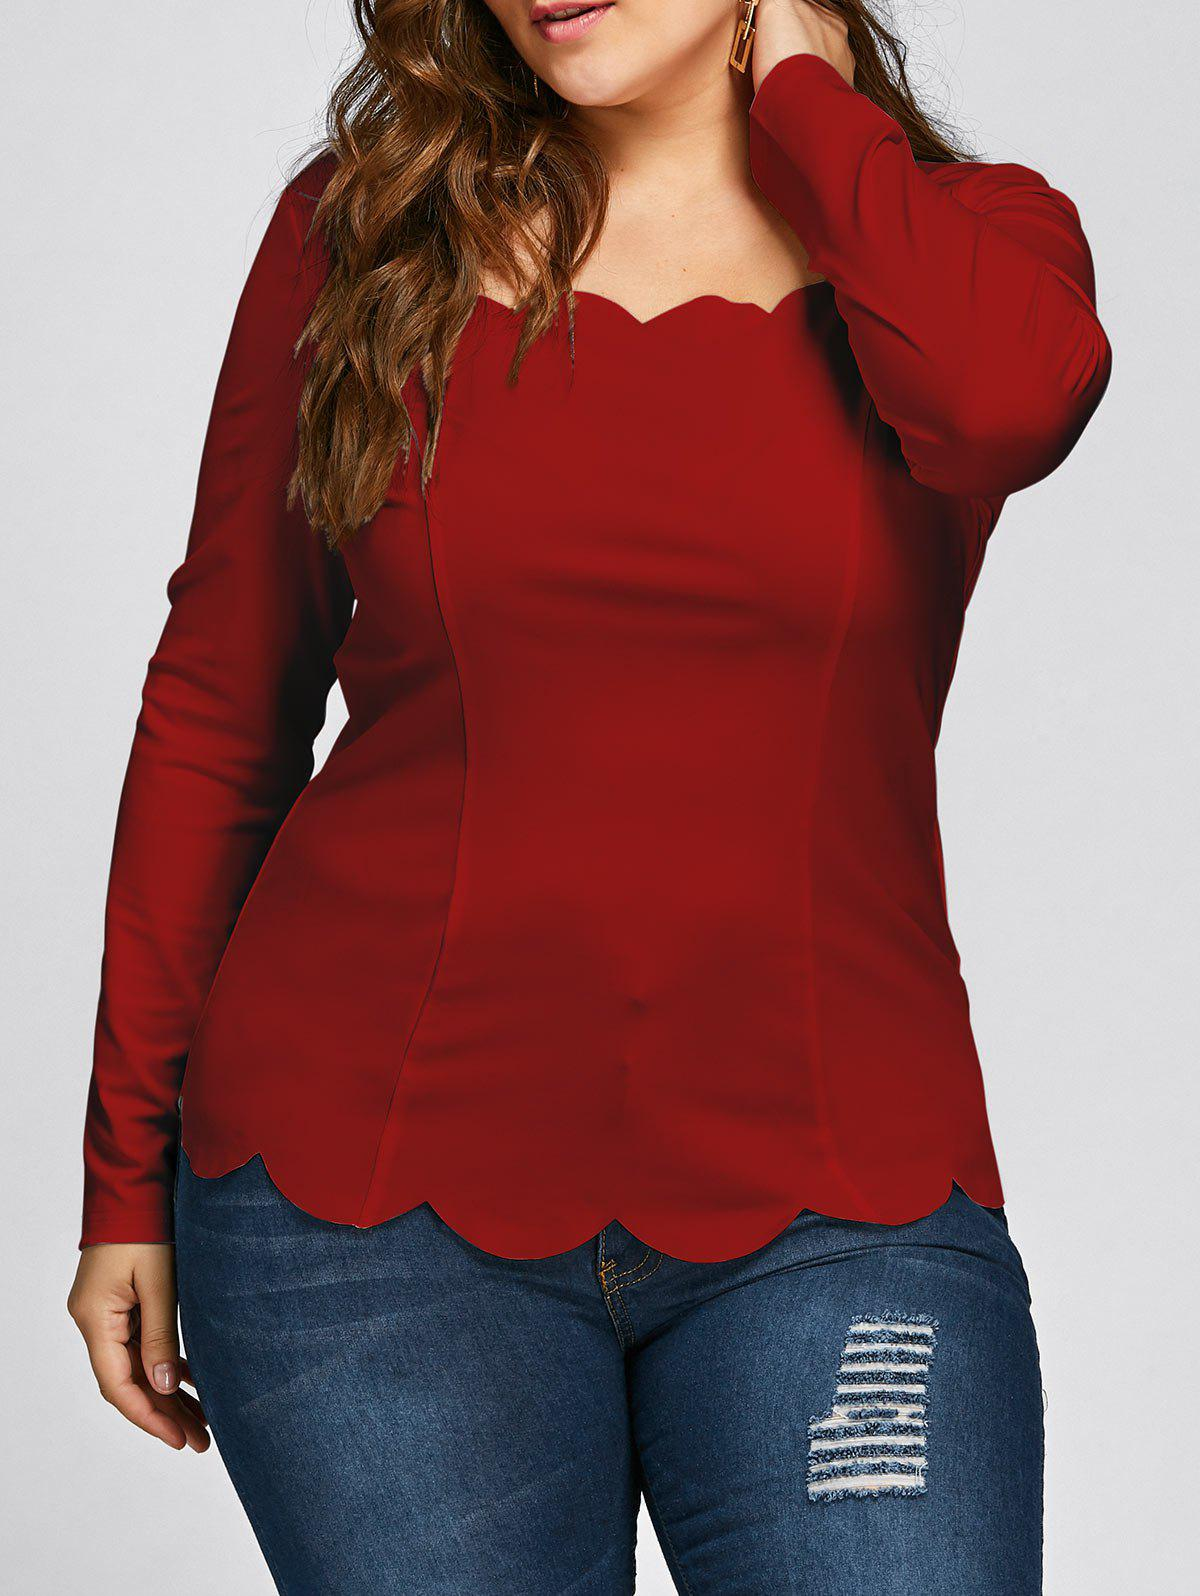 Plus Size Square Neck Scalloped Long Sleeve TopWOMEN<br><br>Size: 2XL; Color: RED; Material: Polyester,Spandex; Shirt Length: Regular; Sleeve Length: Full; Collar: Square Neck; Style: Fashion; Season: Fall,Spring; Pattern Type: Solid; Weight: 0.2530kg; Package Contents: 1 x Top;